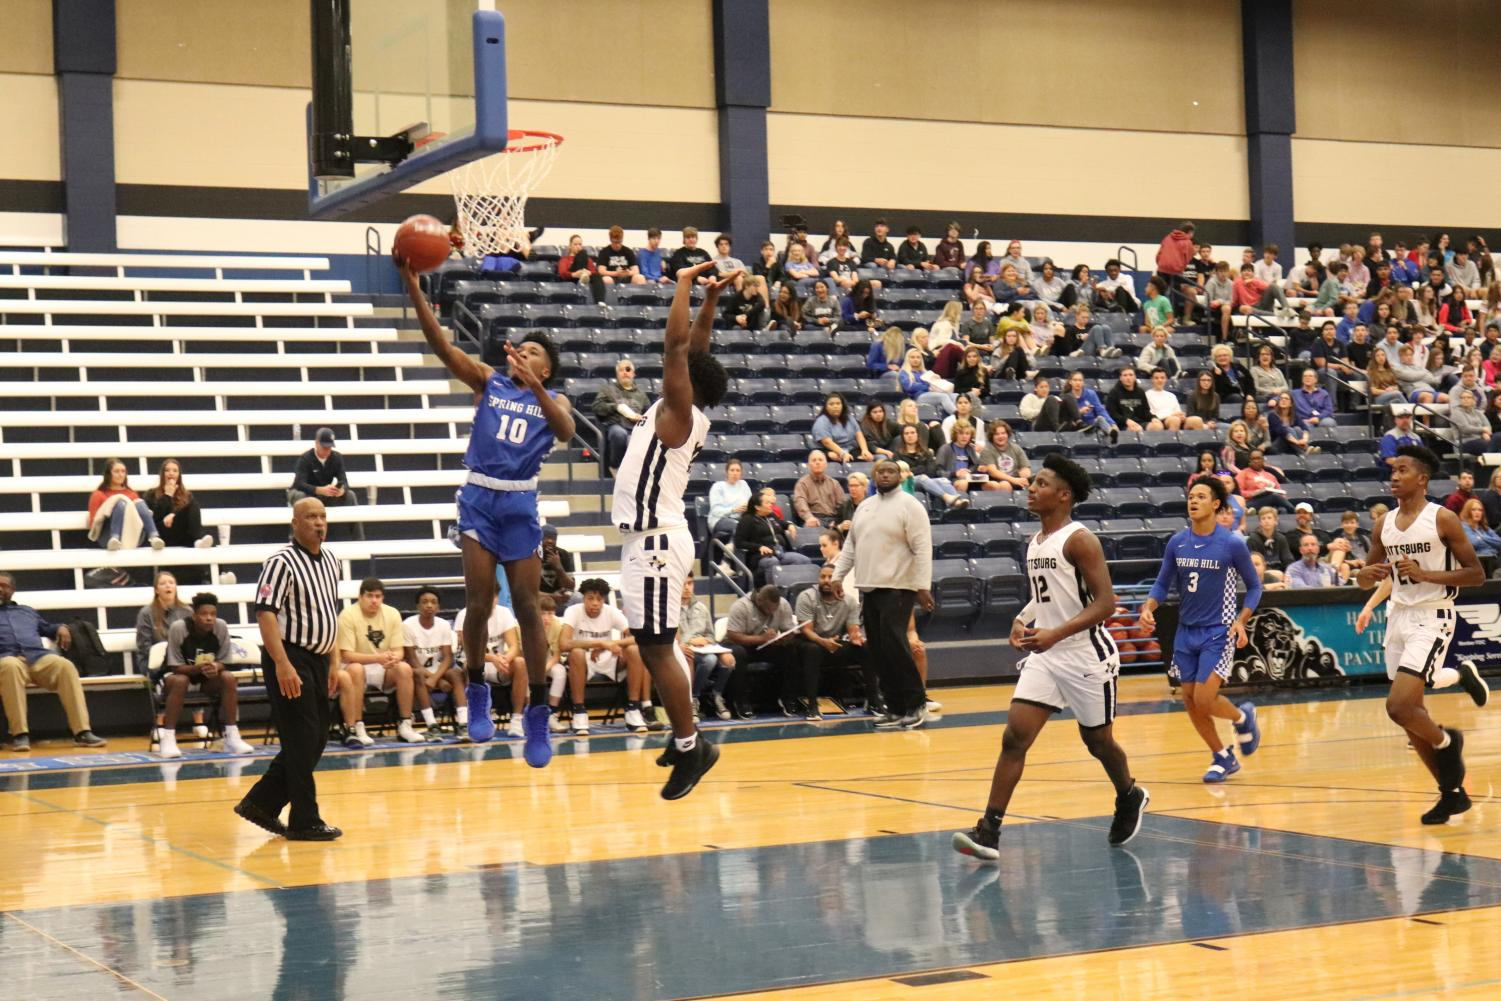 Junior+Curtis+Crowe+goes+up+for+layup+past+defender+in+the+Spring+Hill+High+School+basketball+gym.+